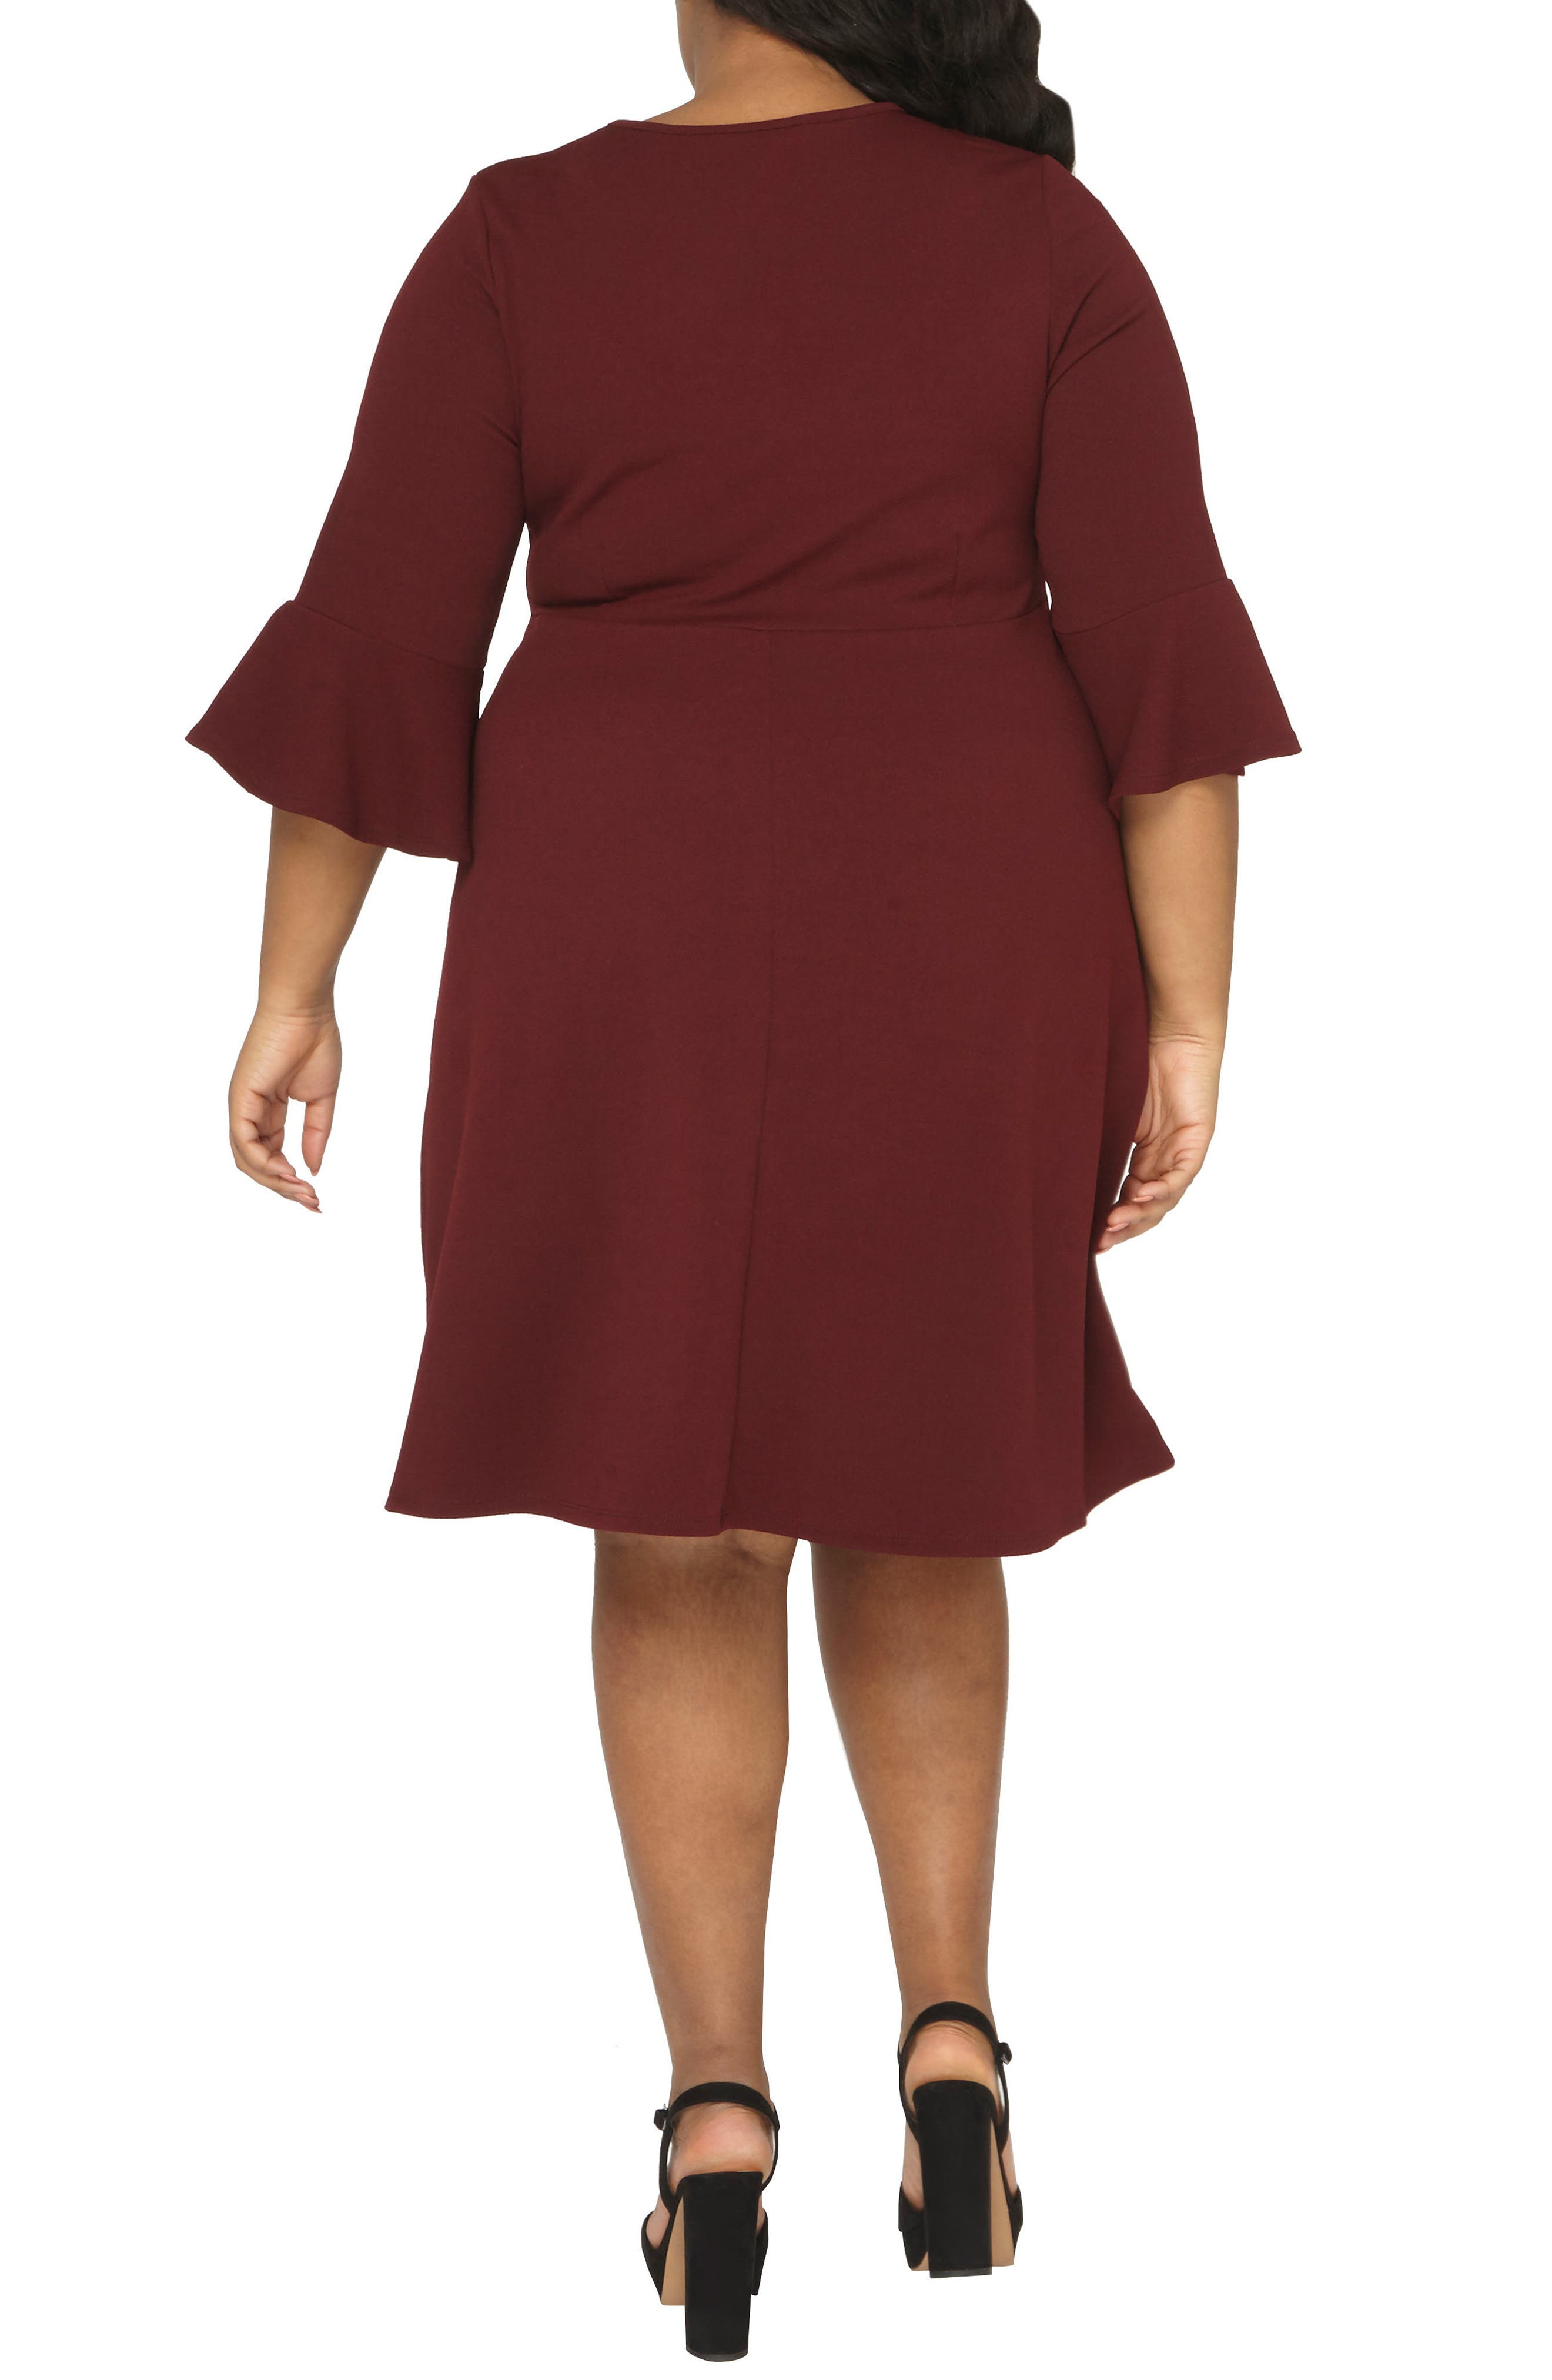 Ruffle Sleeve Fitted Dress,                             Alternate thumbnail 2, color,                             600